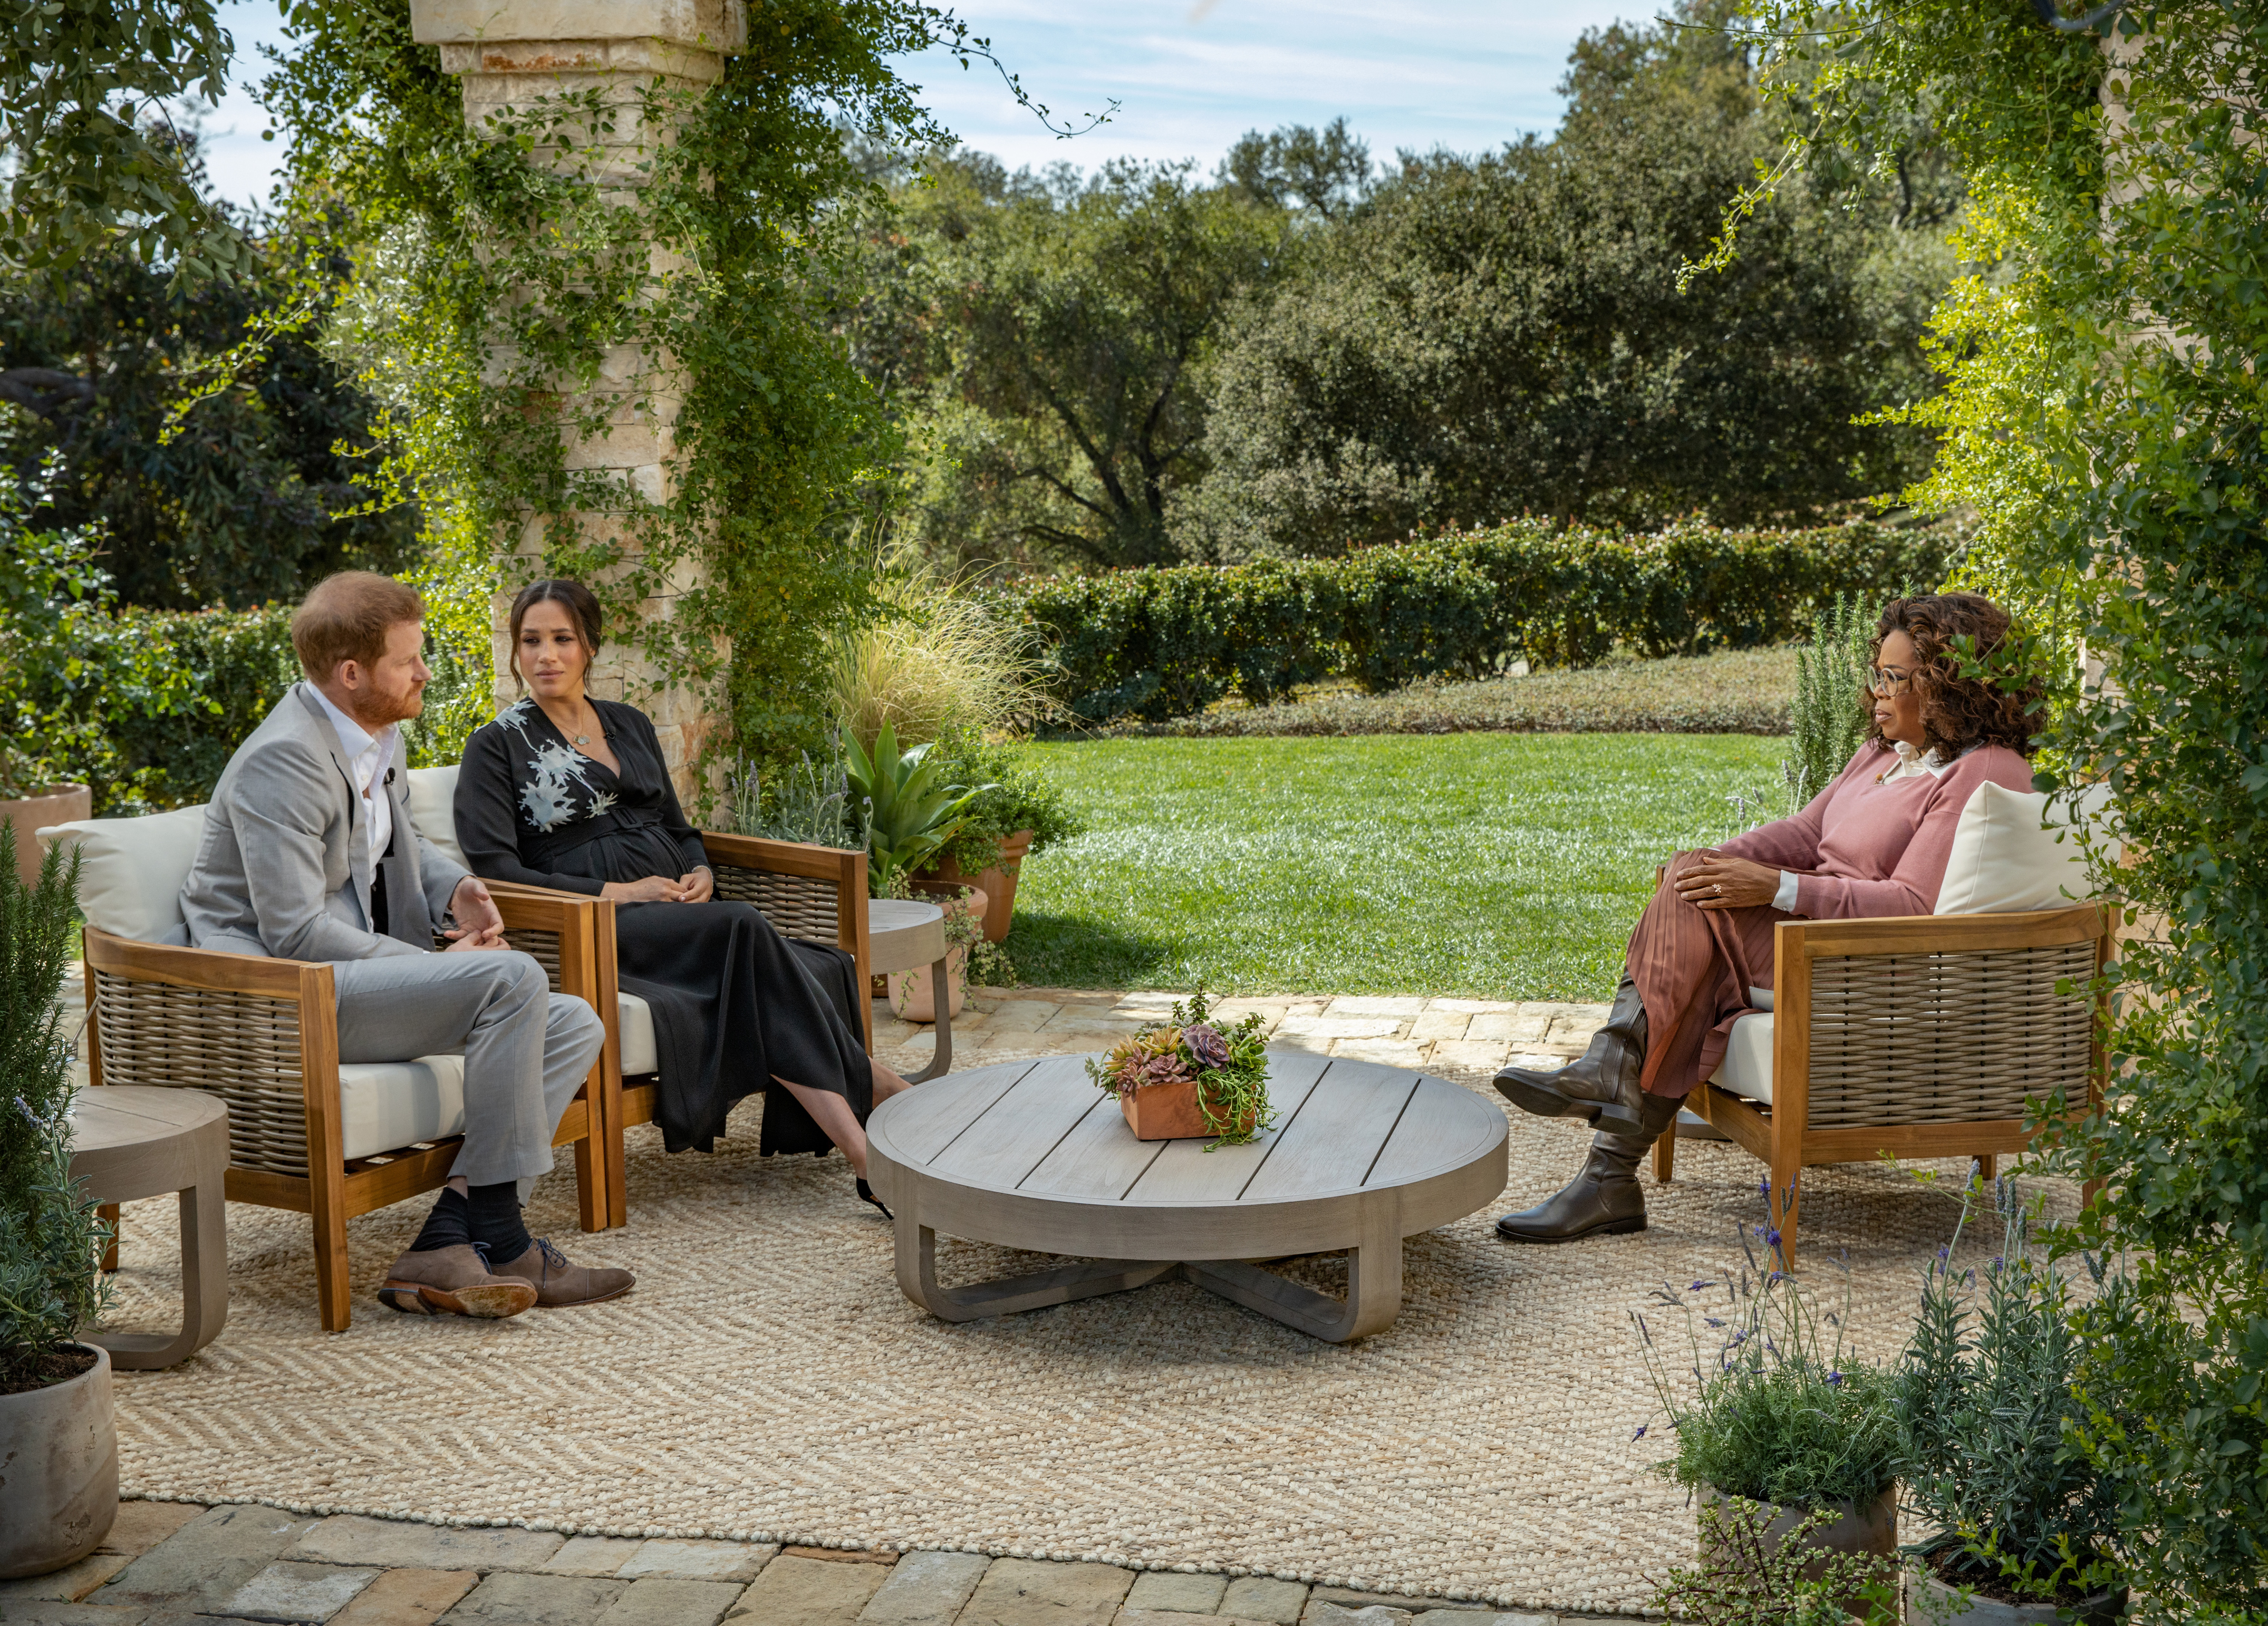 In this handout image released on March 5, Oprah Winfrey interviews Prince Harry and Meghan Markle.